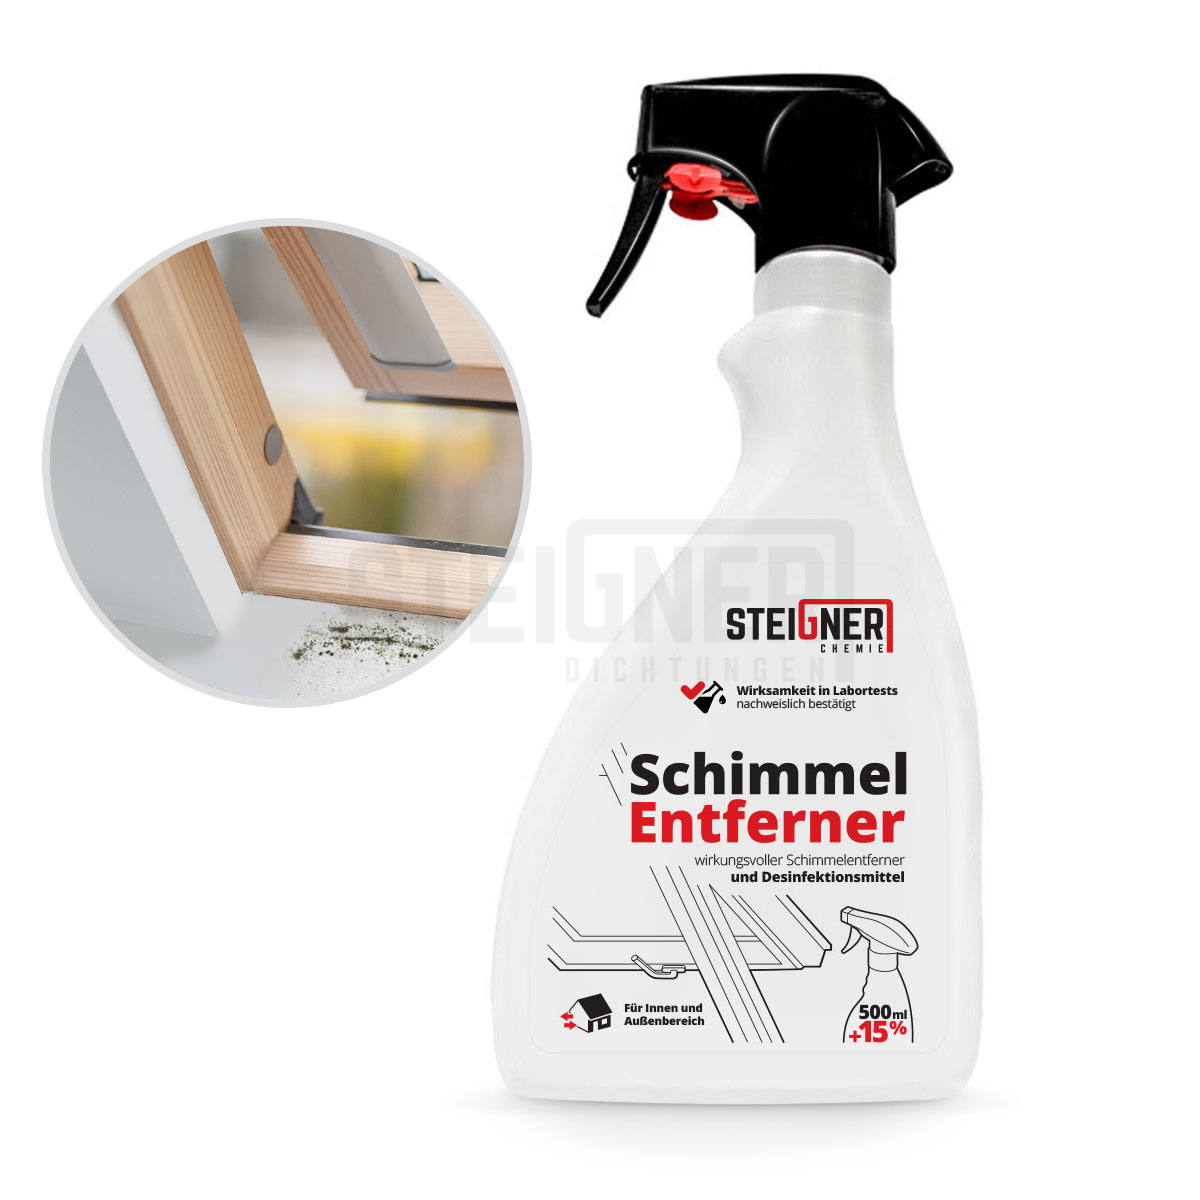 schimmelentferner mittel gegen schimmel reiniger entferner anti schimmel spray ebay. Black Bedroom Furniture Sets. Home Design Ideas